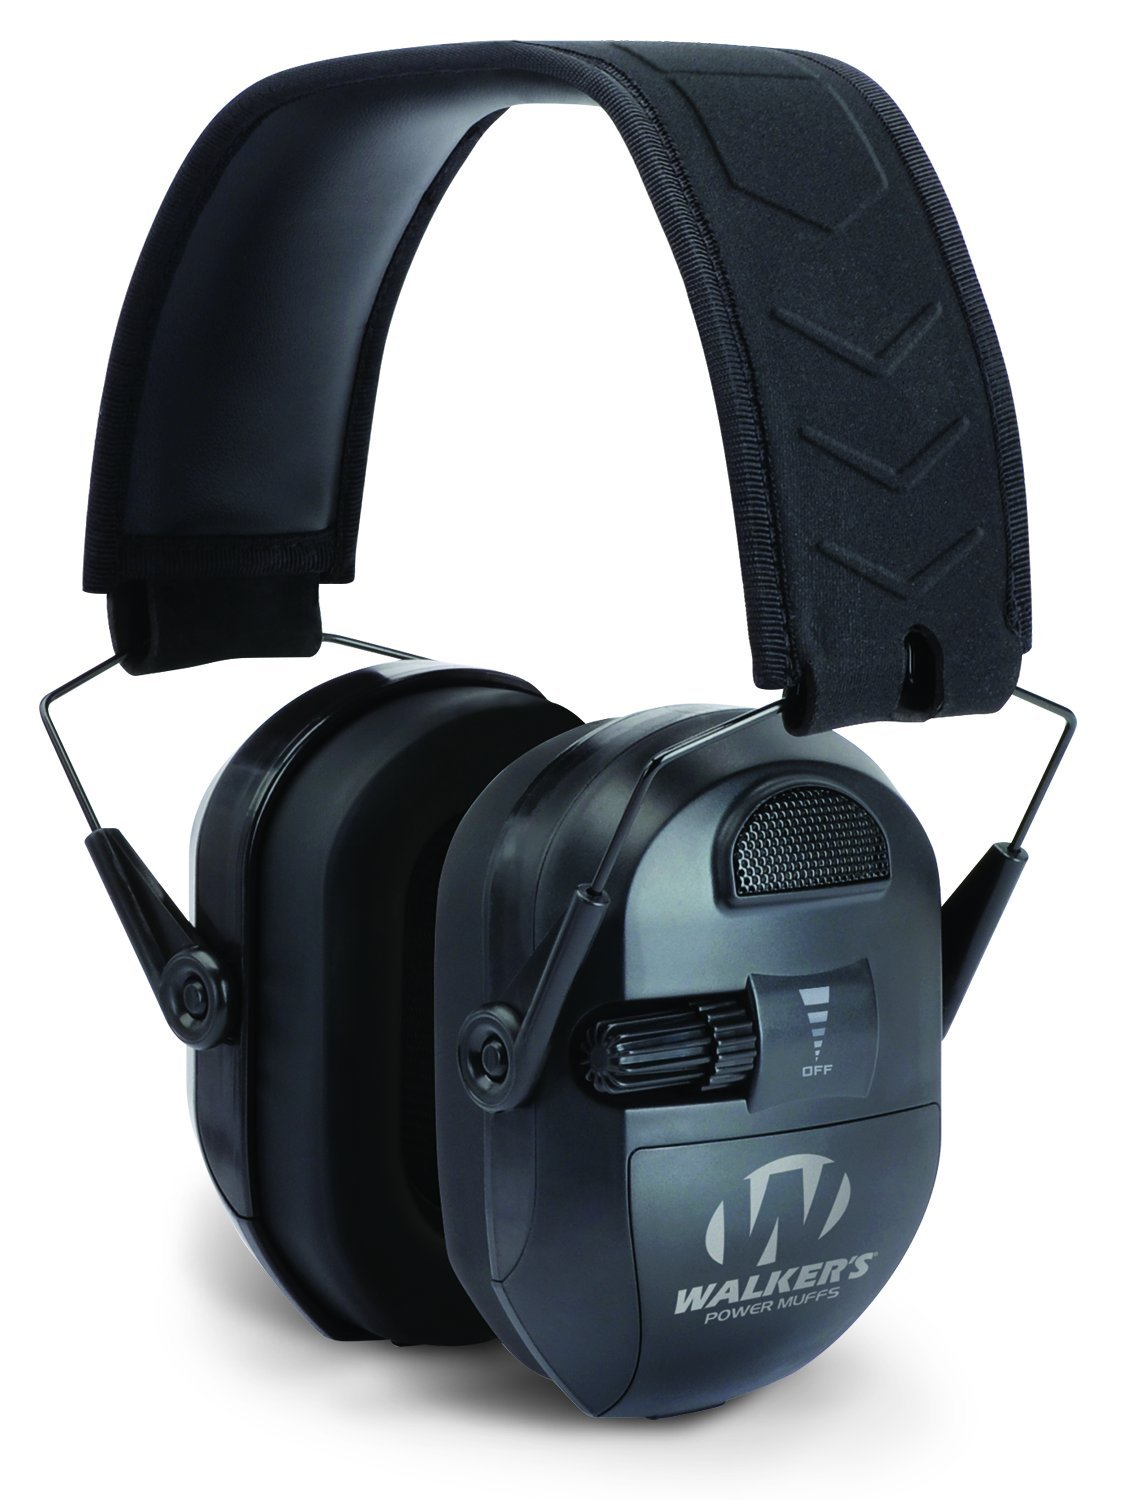 Walker's Ultimate Power Muff, Black